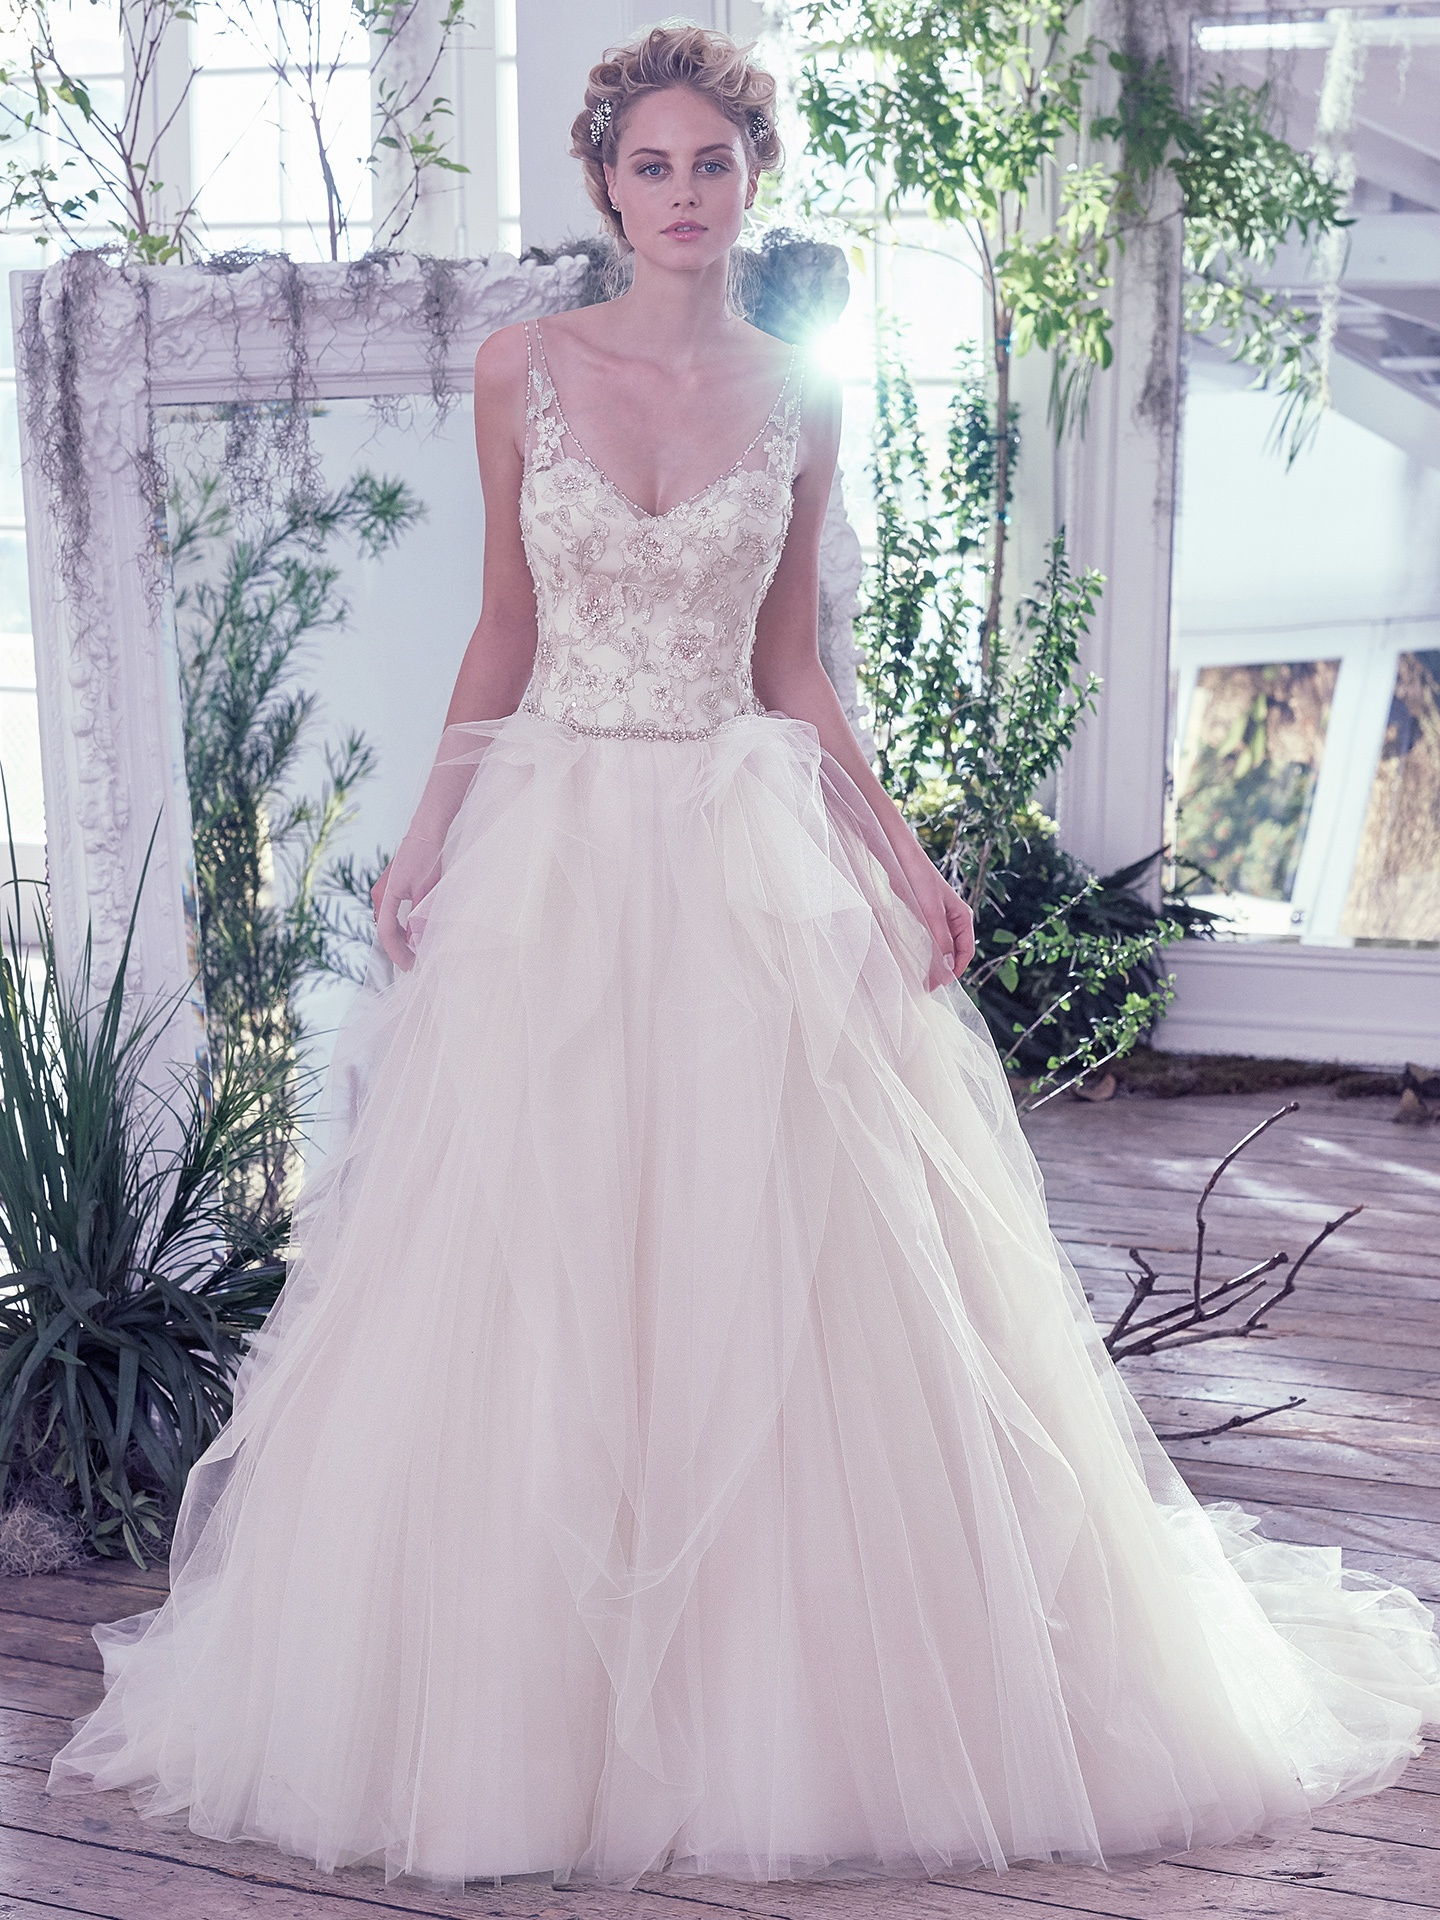 Light Gold with Blush/Pewter/Gold Accent wedding dress by  Maggie Sottero. Colorful Wedding Dresses For The Bold Bride